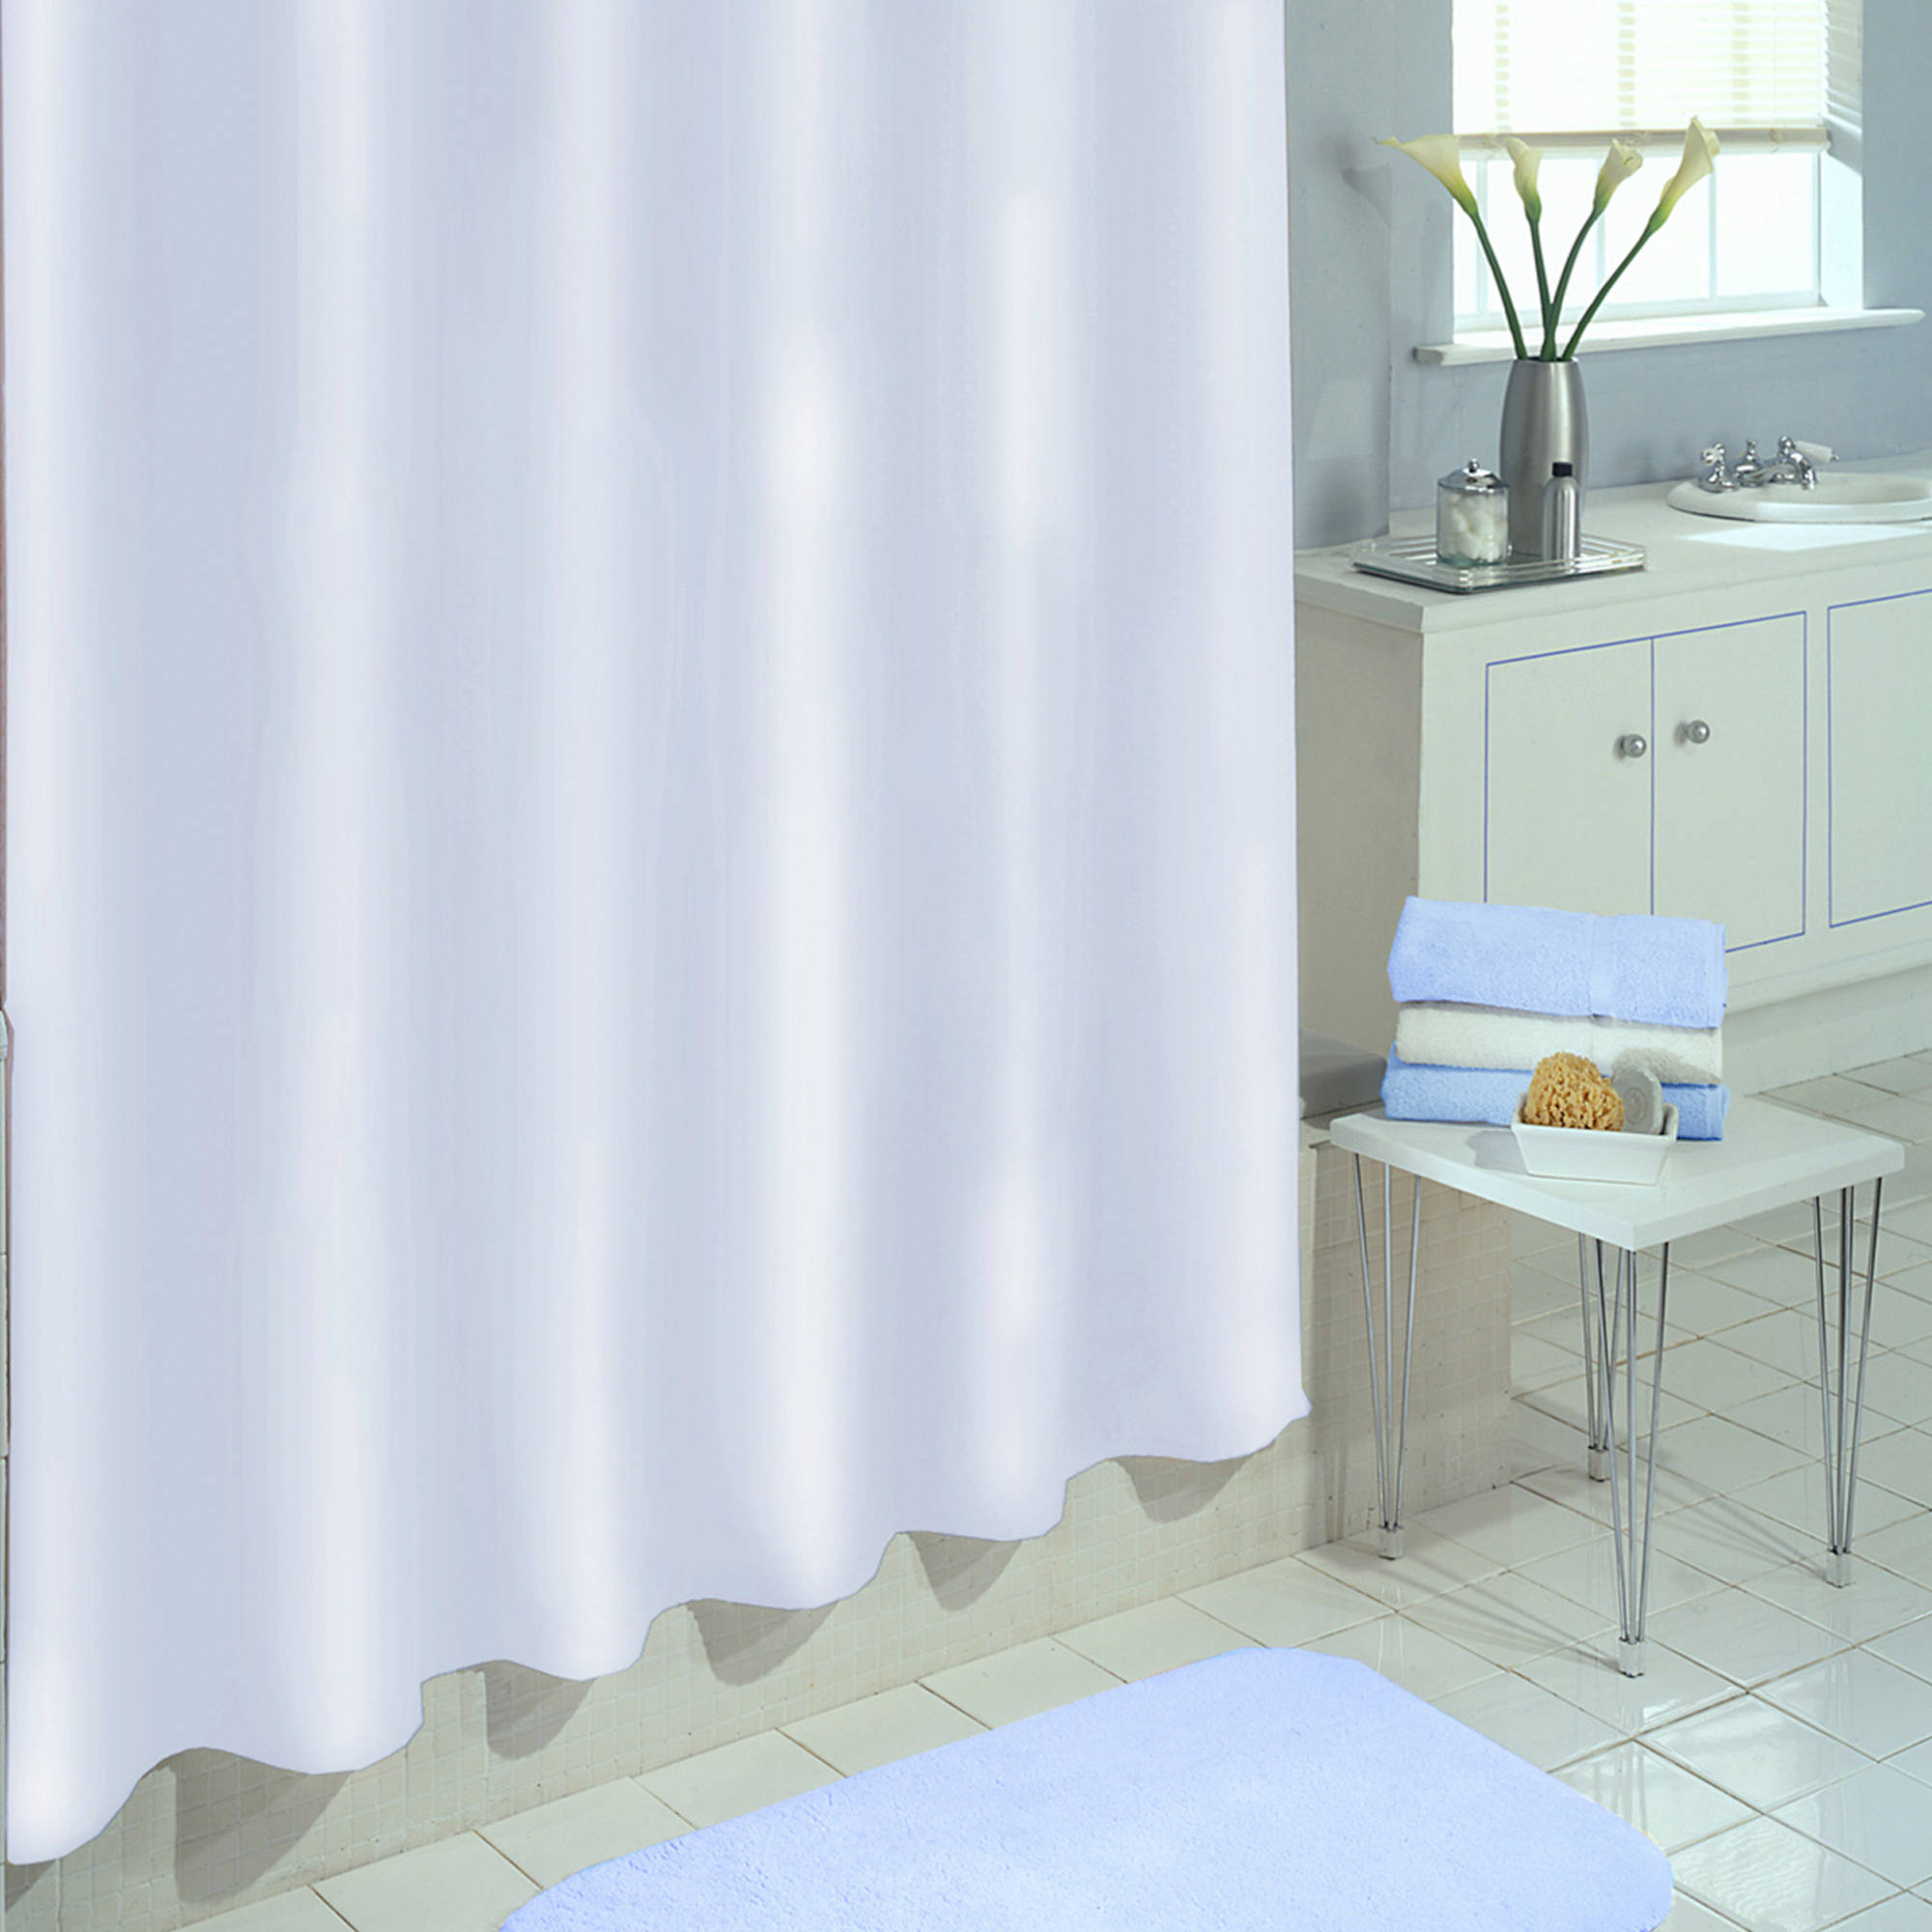 Excell Soft Sensation Vinyl Shower Curtain Liner - Walmart.com